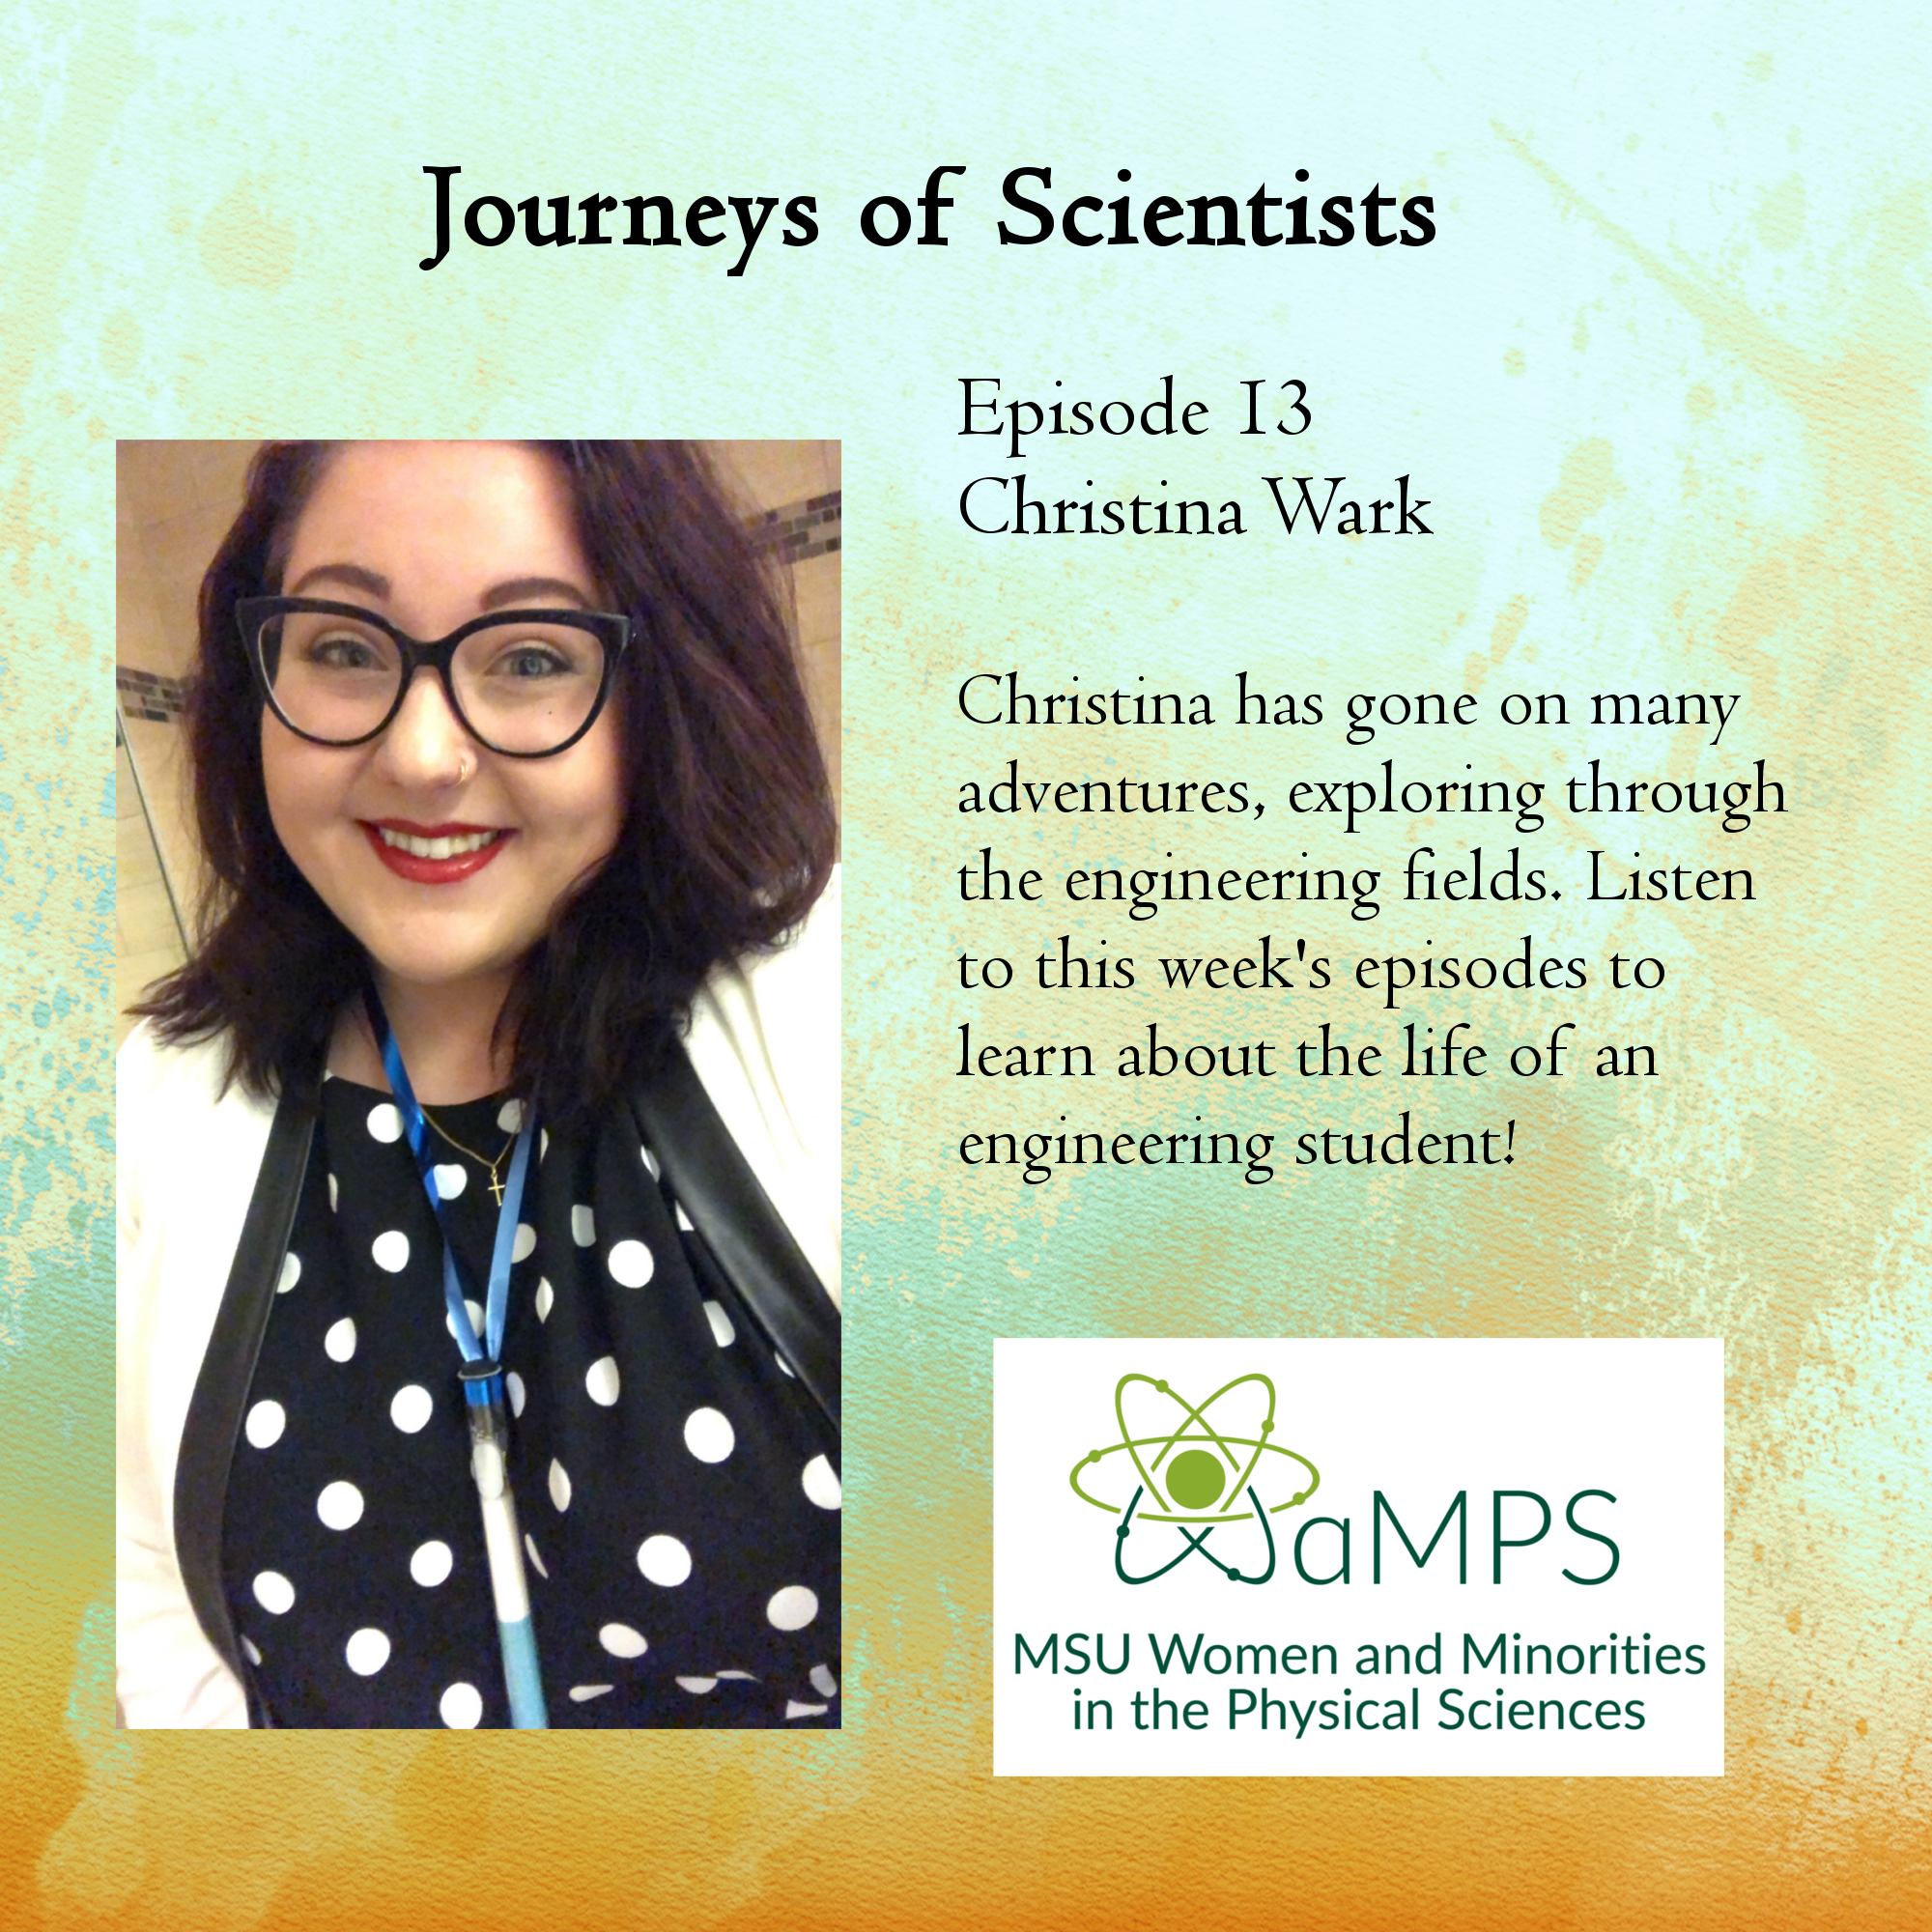 Christina Wark is a PhD student in chemical engineering. She recently joined the SCB group in ChEMS where, broadly, she will work with electrochemistry. Some of the work that she has been involved in so far includes building computational models of reaction kinetics in electrochemical reactions and observing the associated hydrogen evolution reaction. More information about the MSU Women in Engineering can be found at https://www.egr.msu.edu/wie/